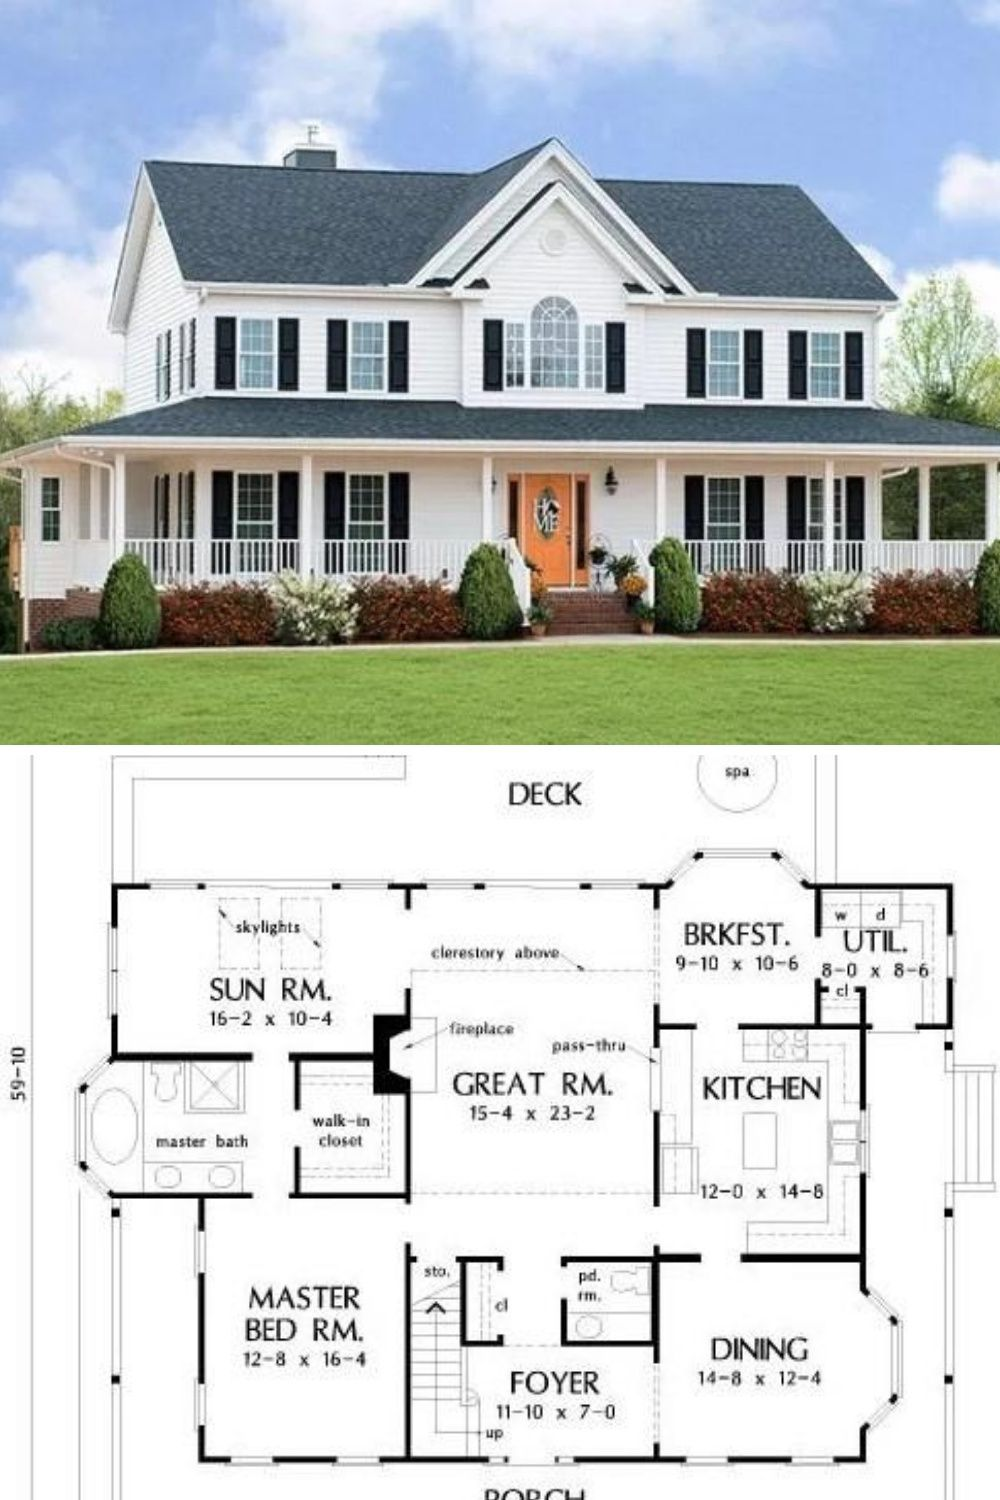 2-Story 4-Bedroom The Riverbend Farmhouse House Plan with ...